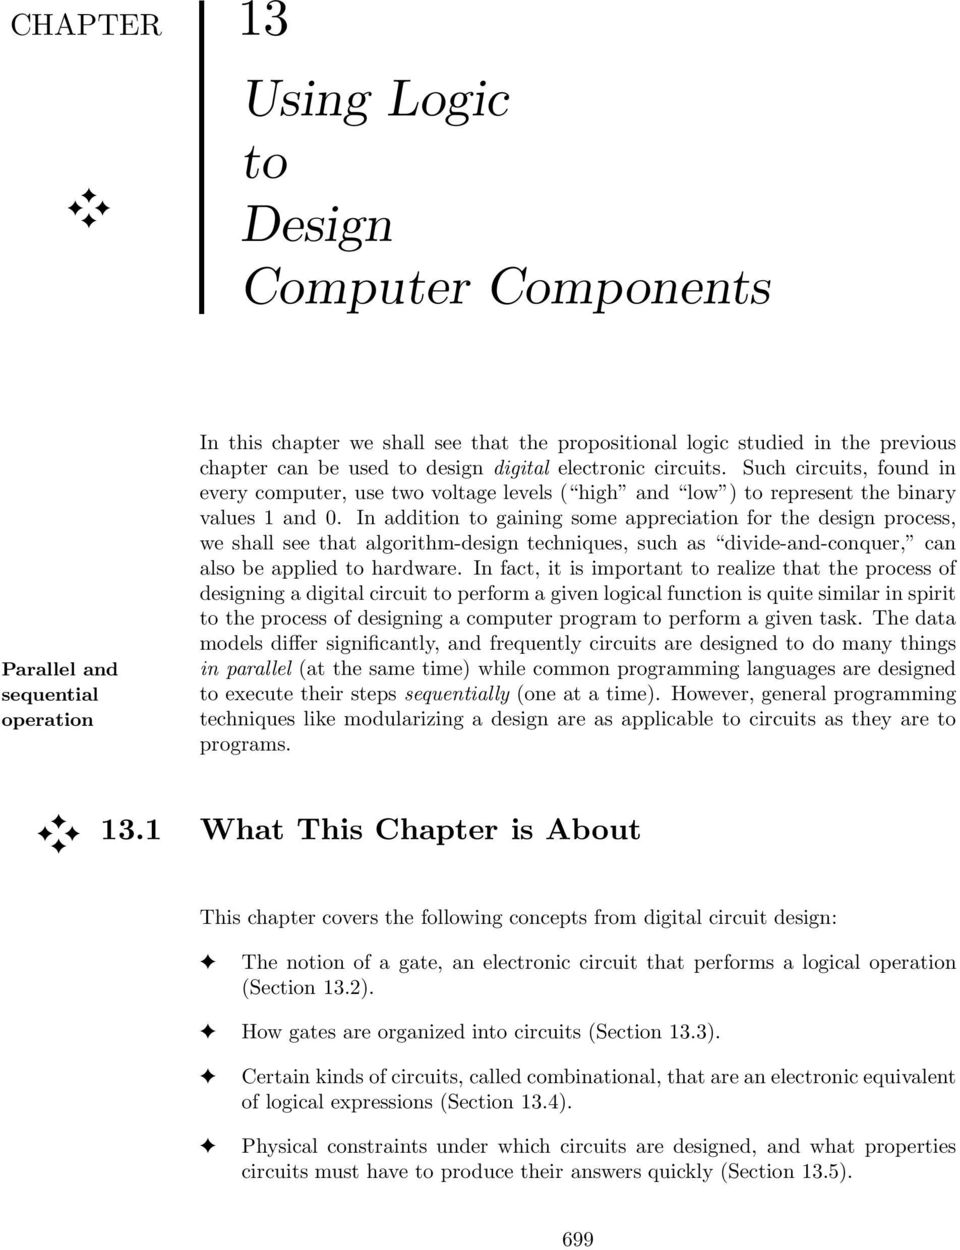 Using Logic To Design Computer Components Pdf Designing Digital Circuits In Addition Gaining Some Appreciation For The Process We Shall See That Algorithm